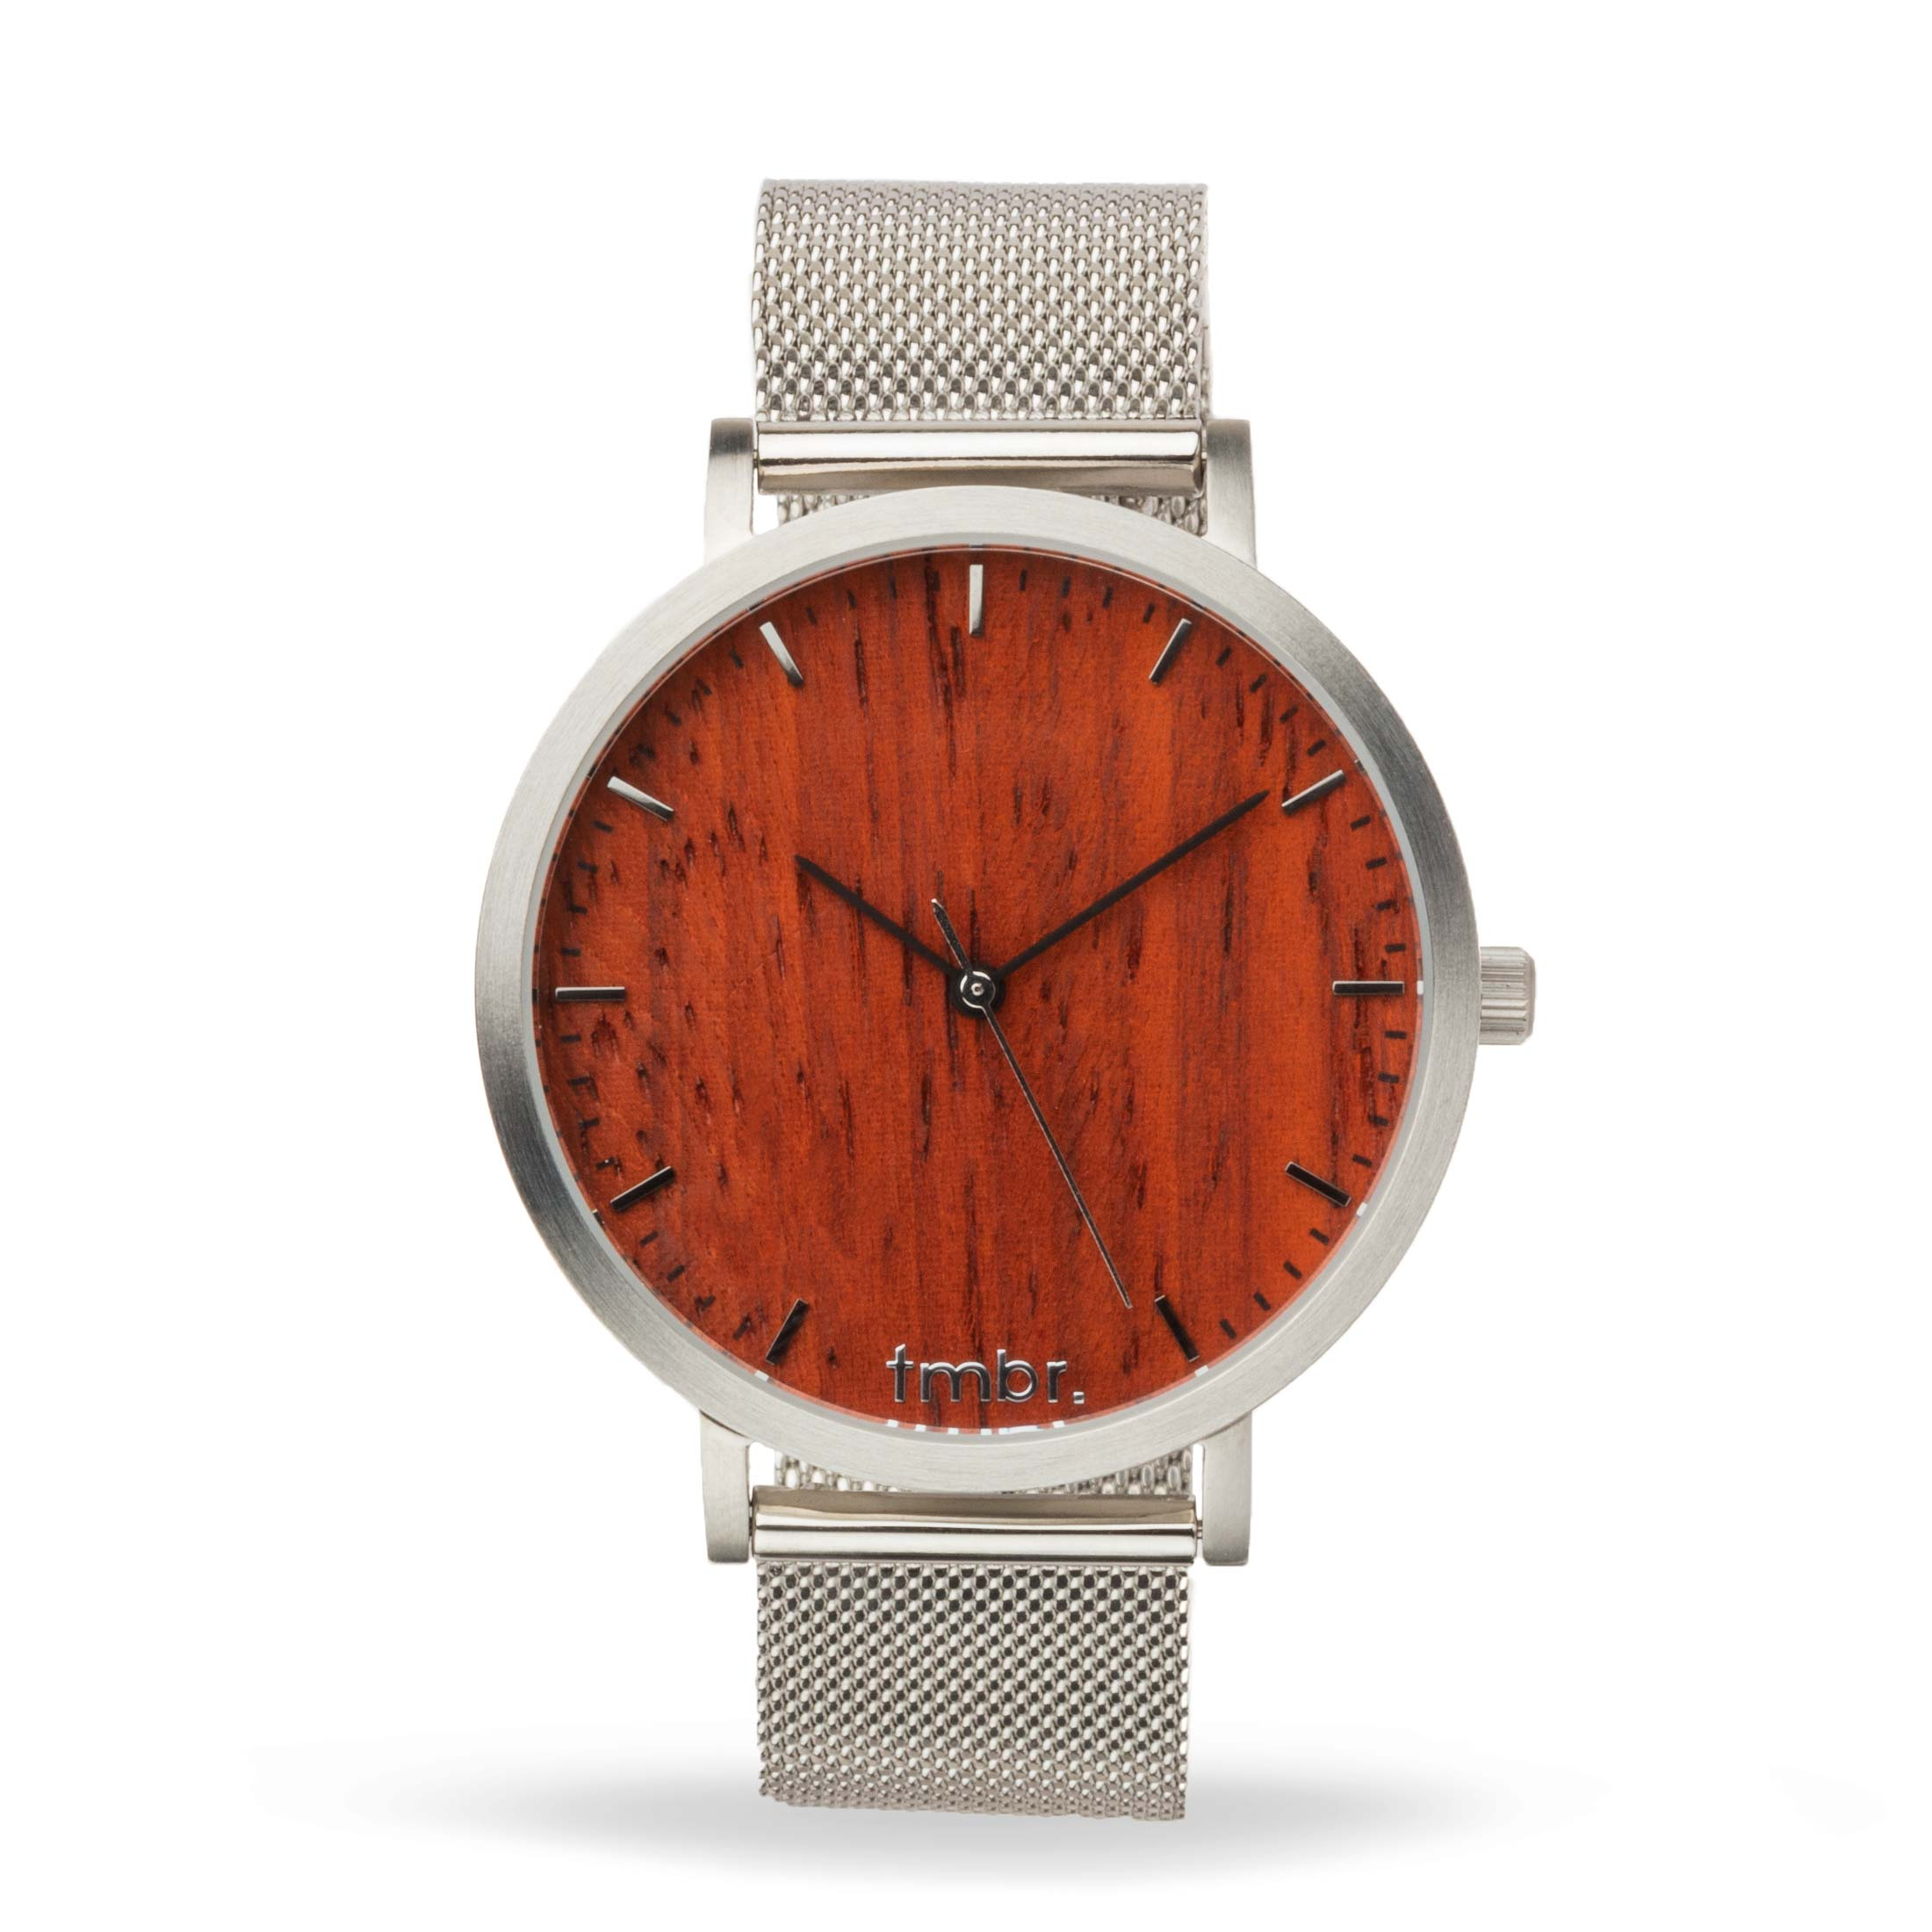 Engraved Tmbr Helm Minimalist Wooden Personalized Watch Rosewood